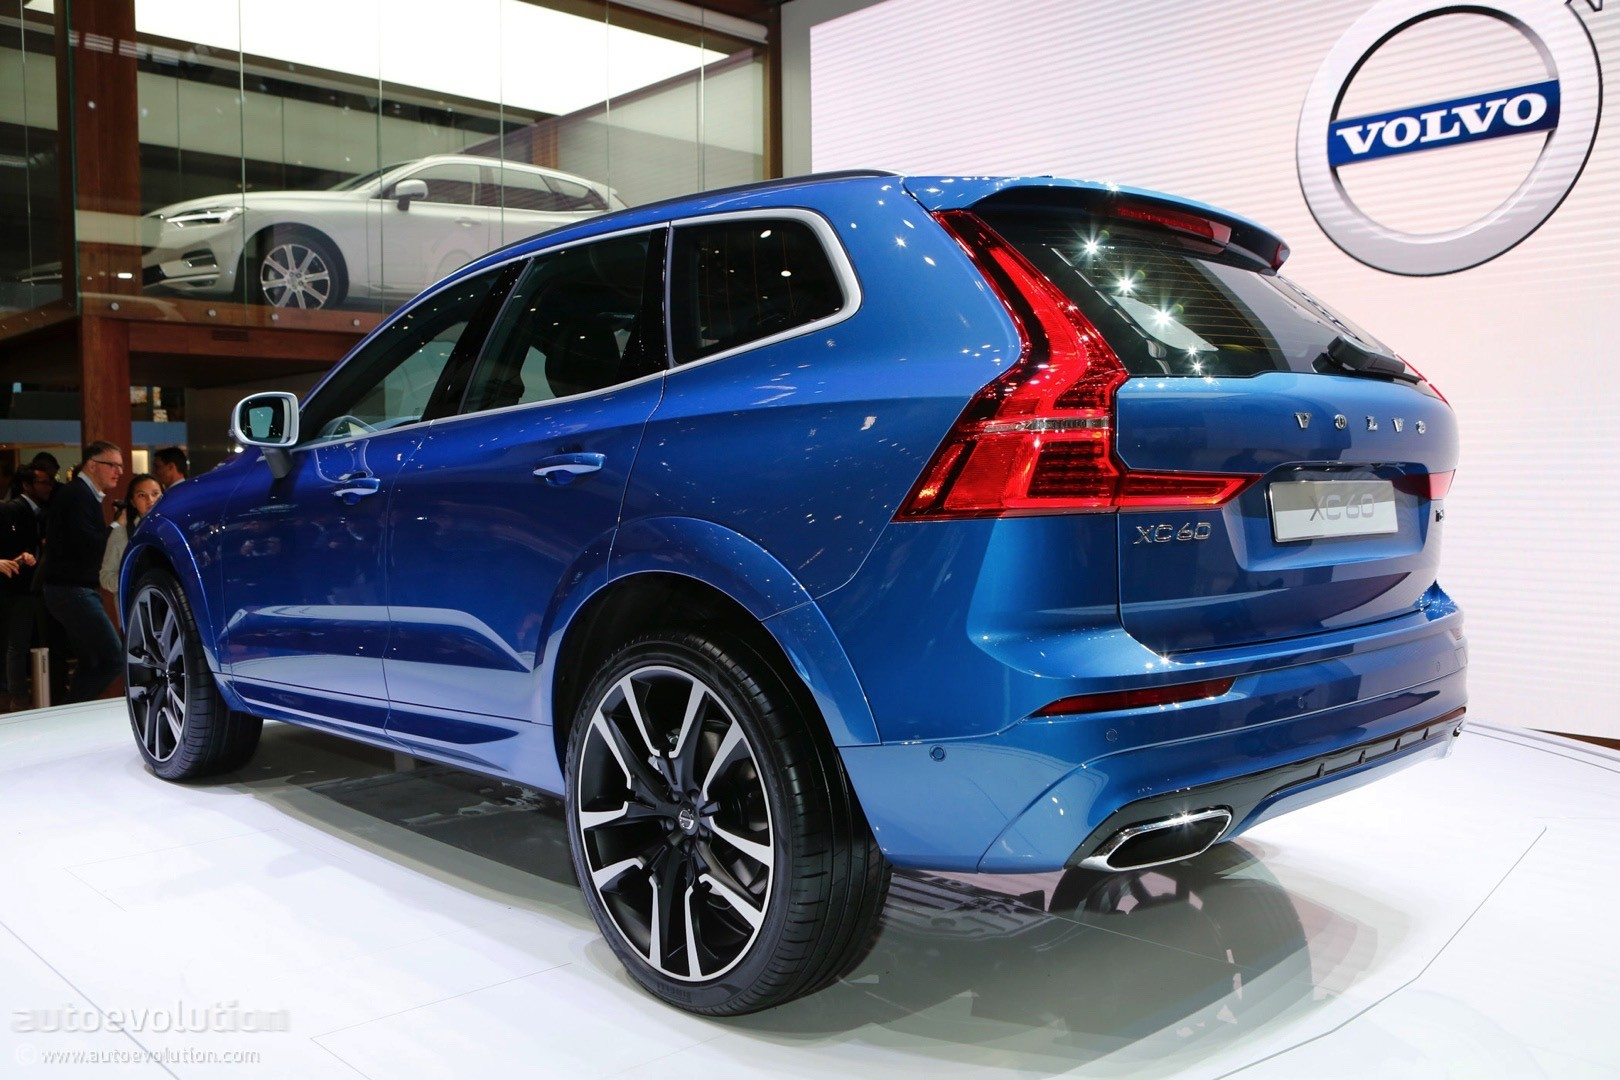 2018 volvo xc60 making u s debut at new york auto show - Auto motor show ...